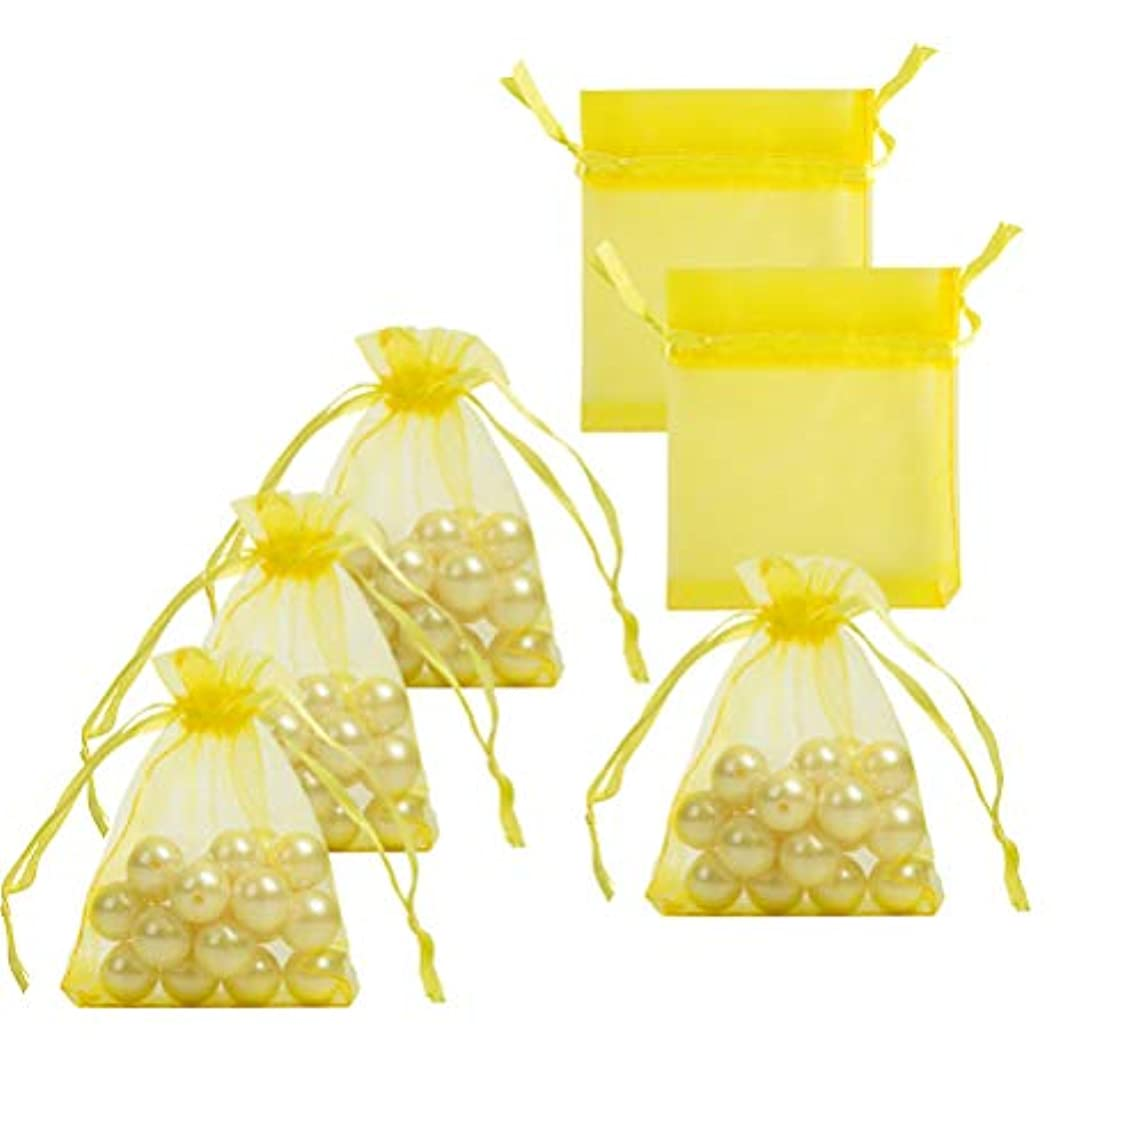 Small Organza Bags with Drawstrings 2.7x3.5 inch, Yellow, Pack of 100